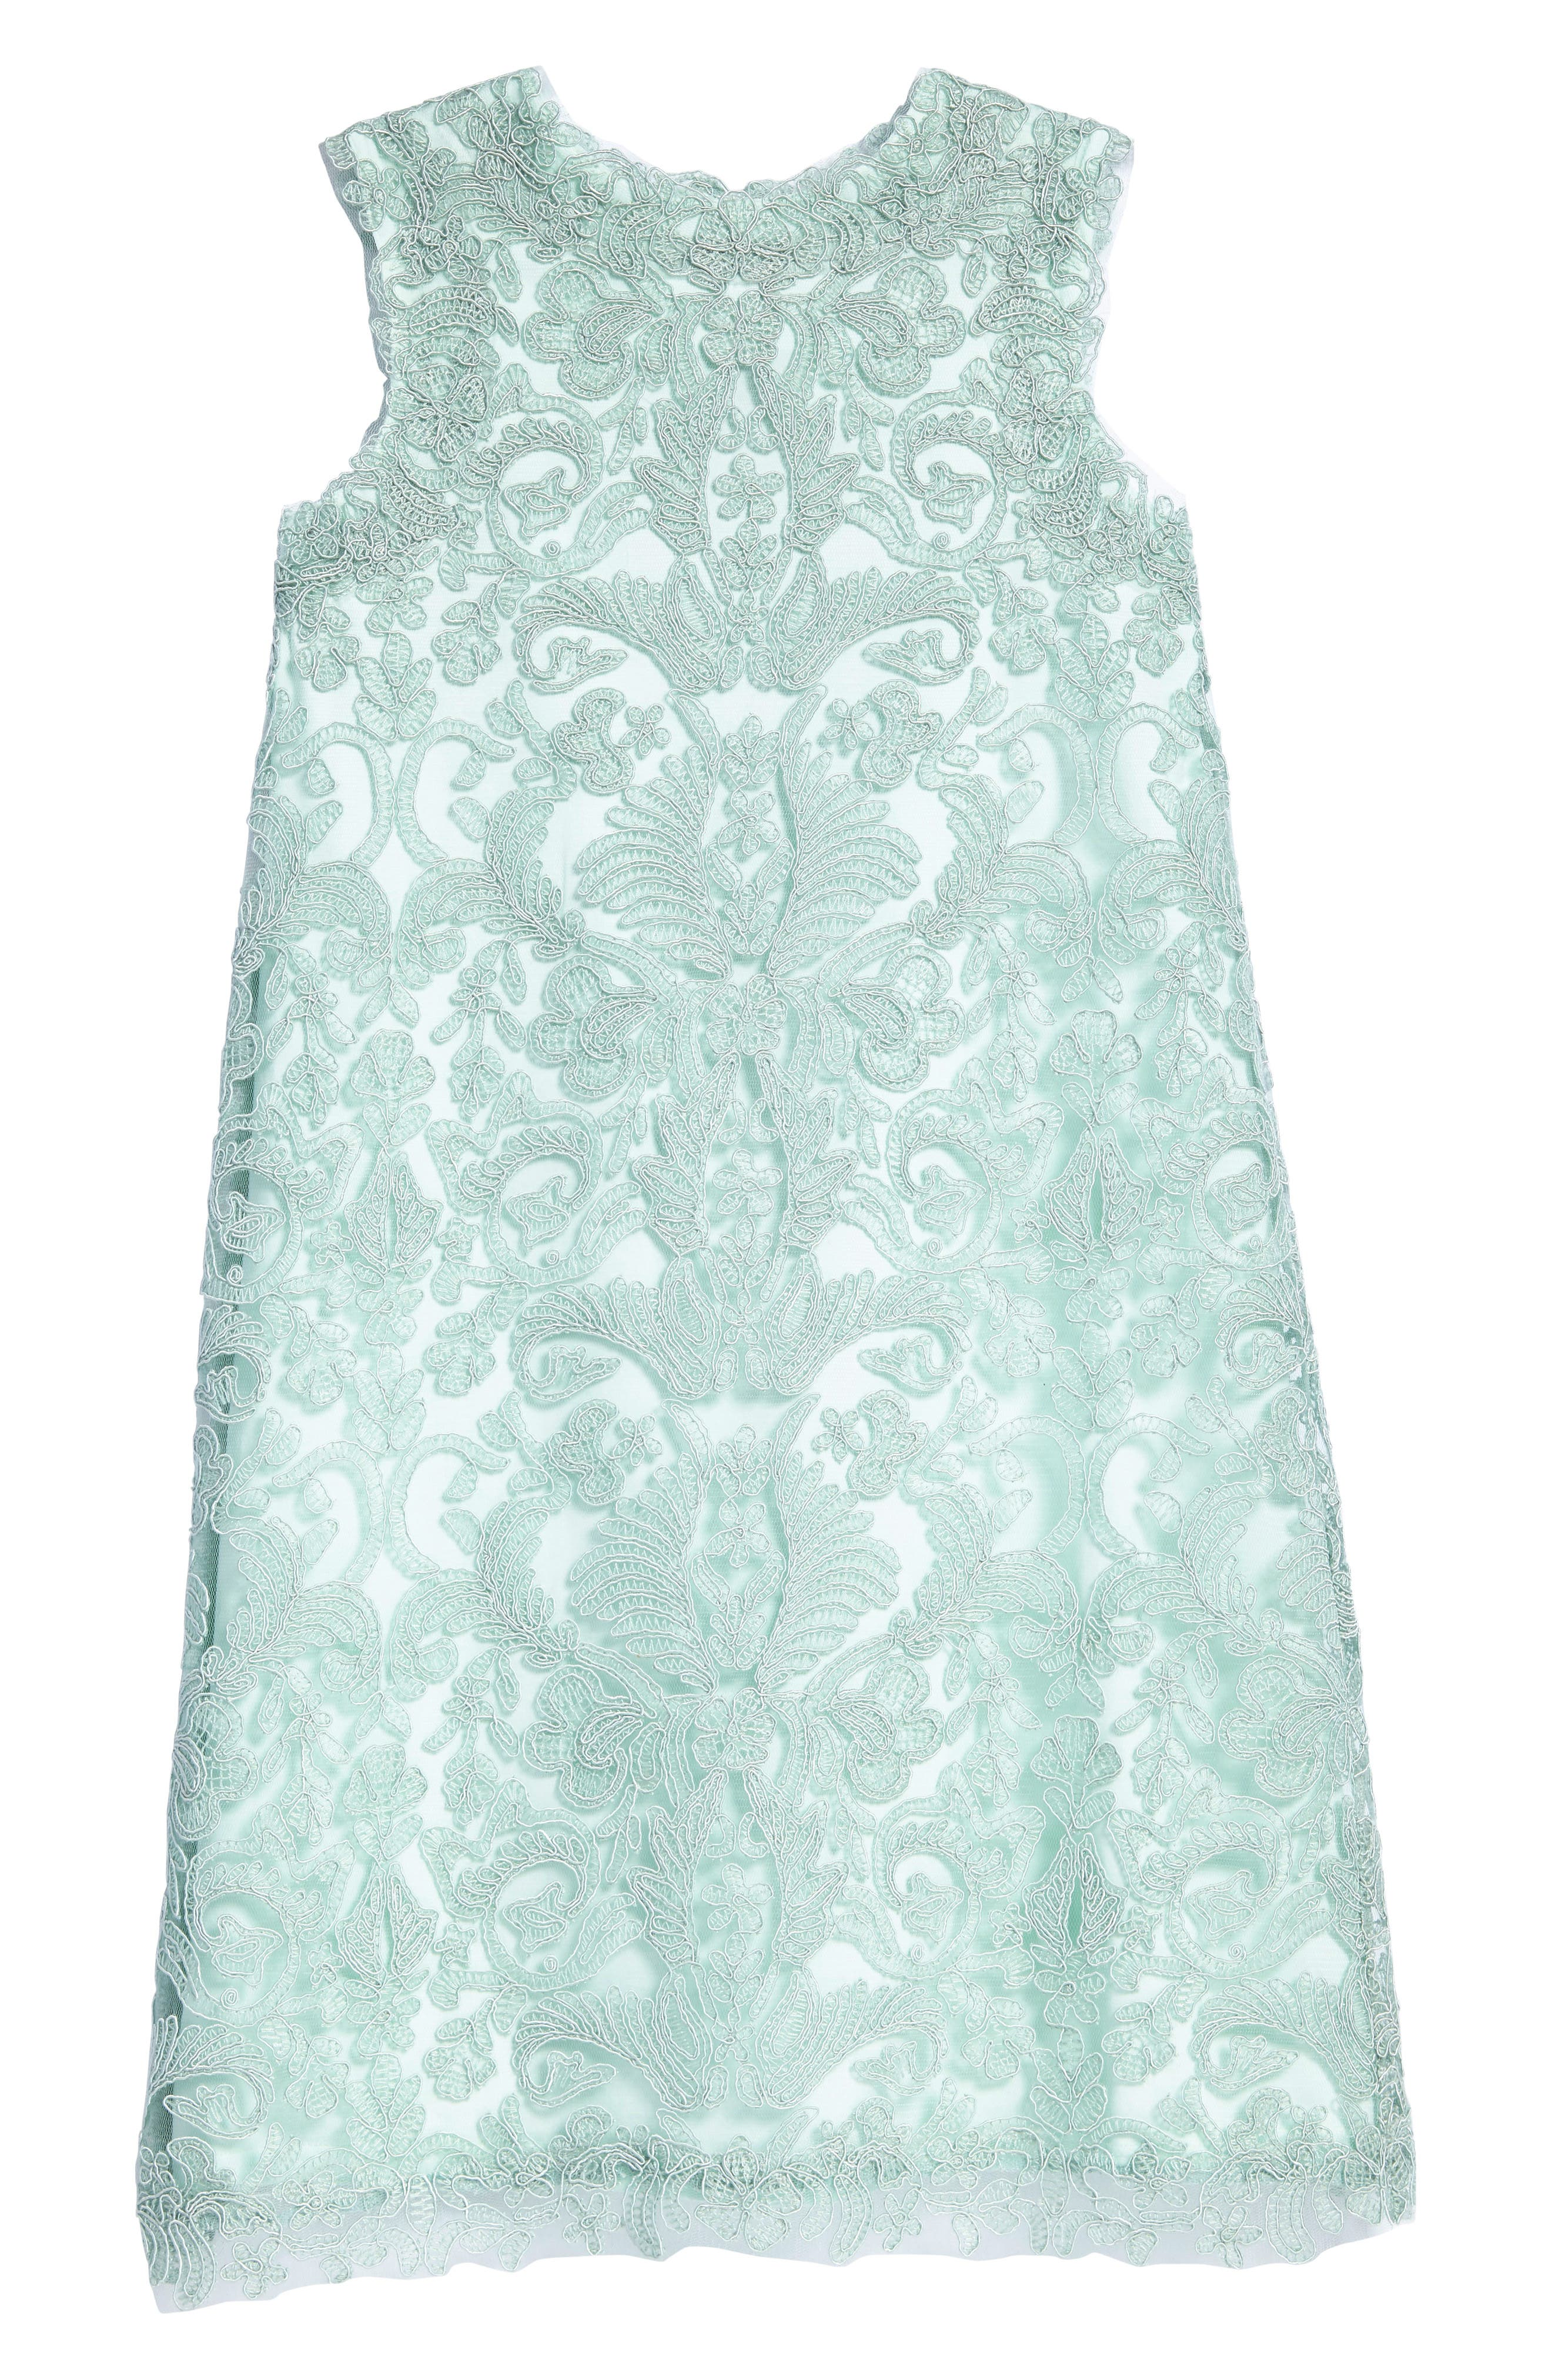 Main Image - Tadashi Shoji 'Honeysuckle' Embroidered Tulle Dress (Toddler Girls, Little Girls & Big Girls)